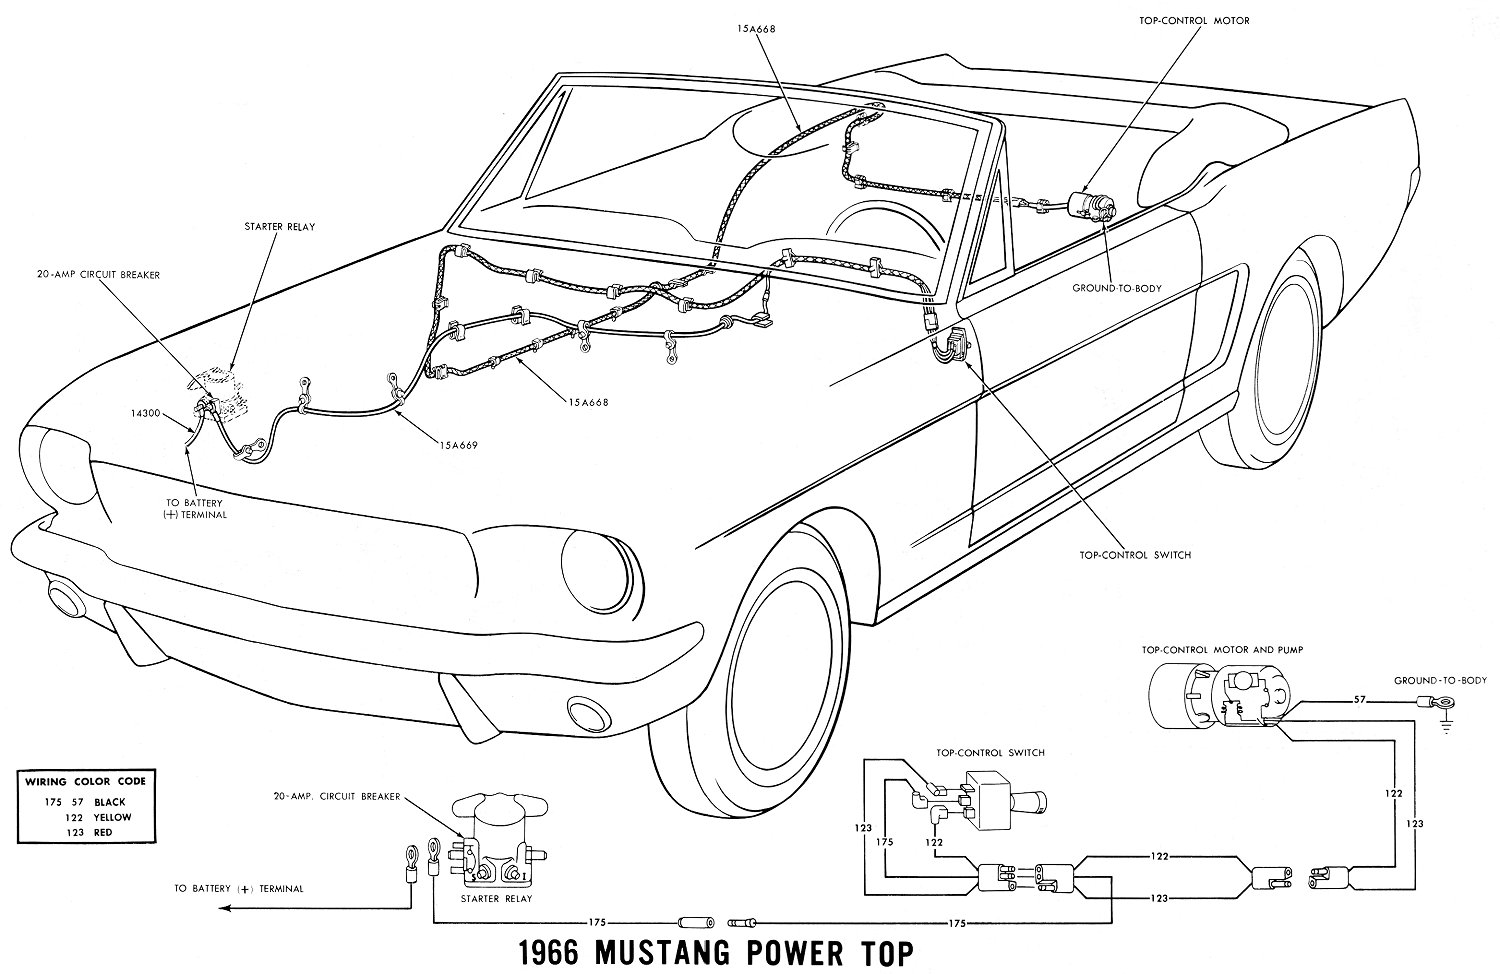 1966 Mustang Wiring Diagram Manual Content Resource Of Ford Diagrams Average Joe Restoration Rh Averagejoerestoration Com 1967 Schematic